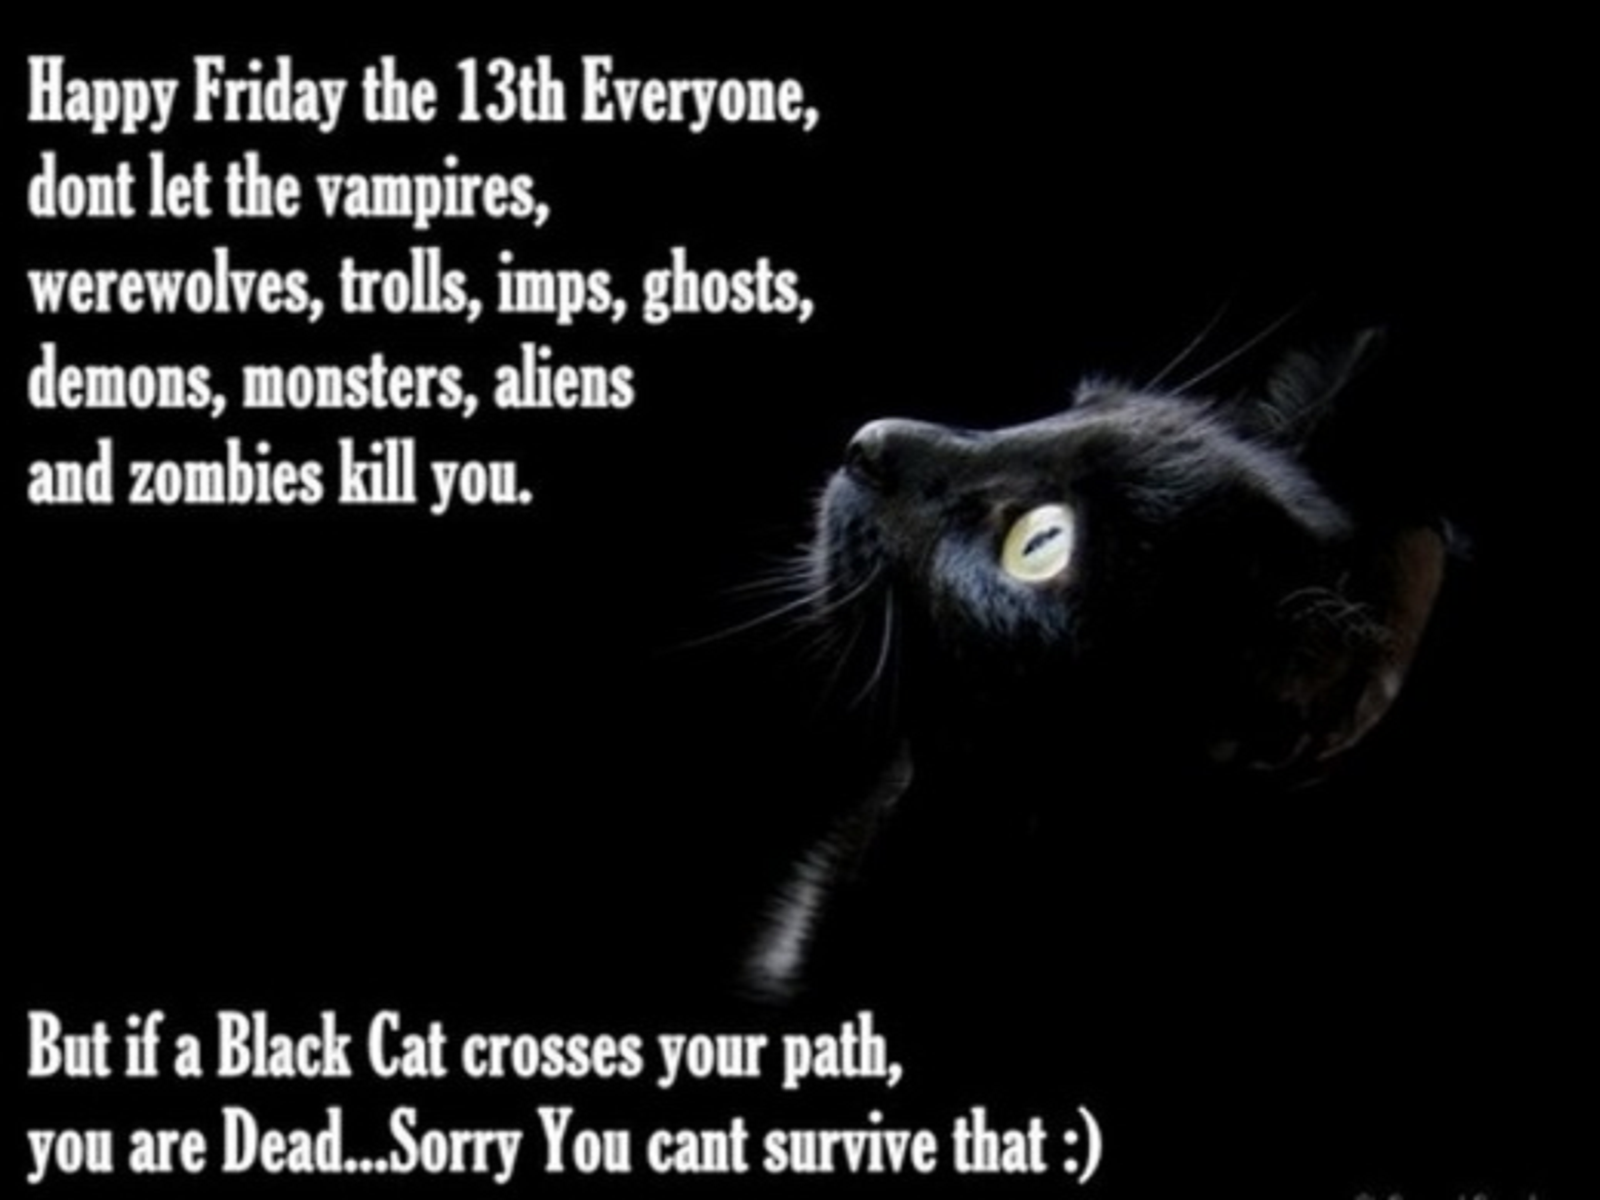 Friday The 13th Happy Friday The 13th Google Search Black Cat